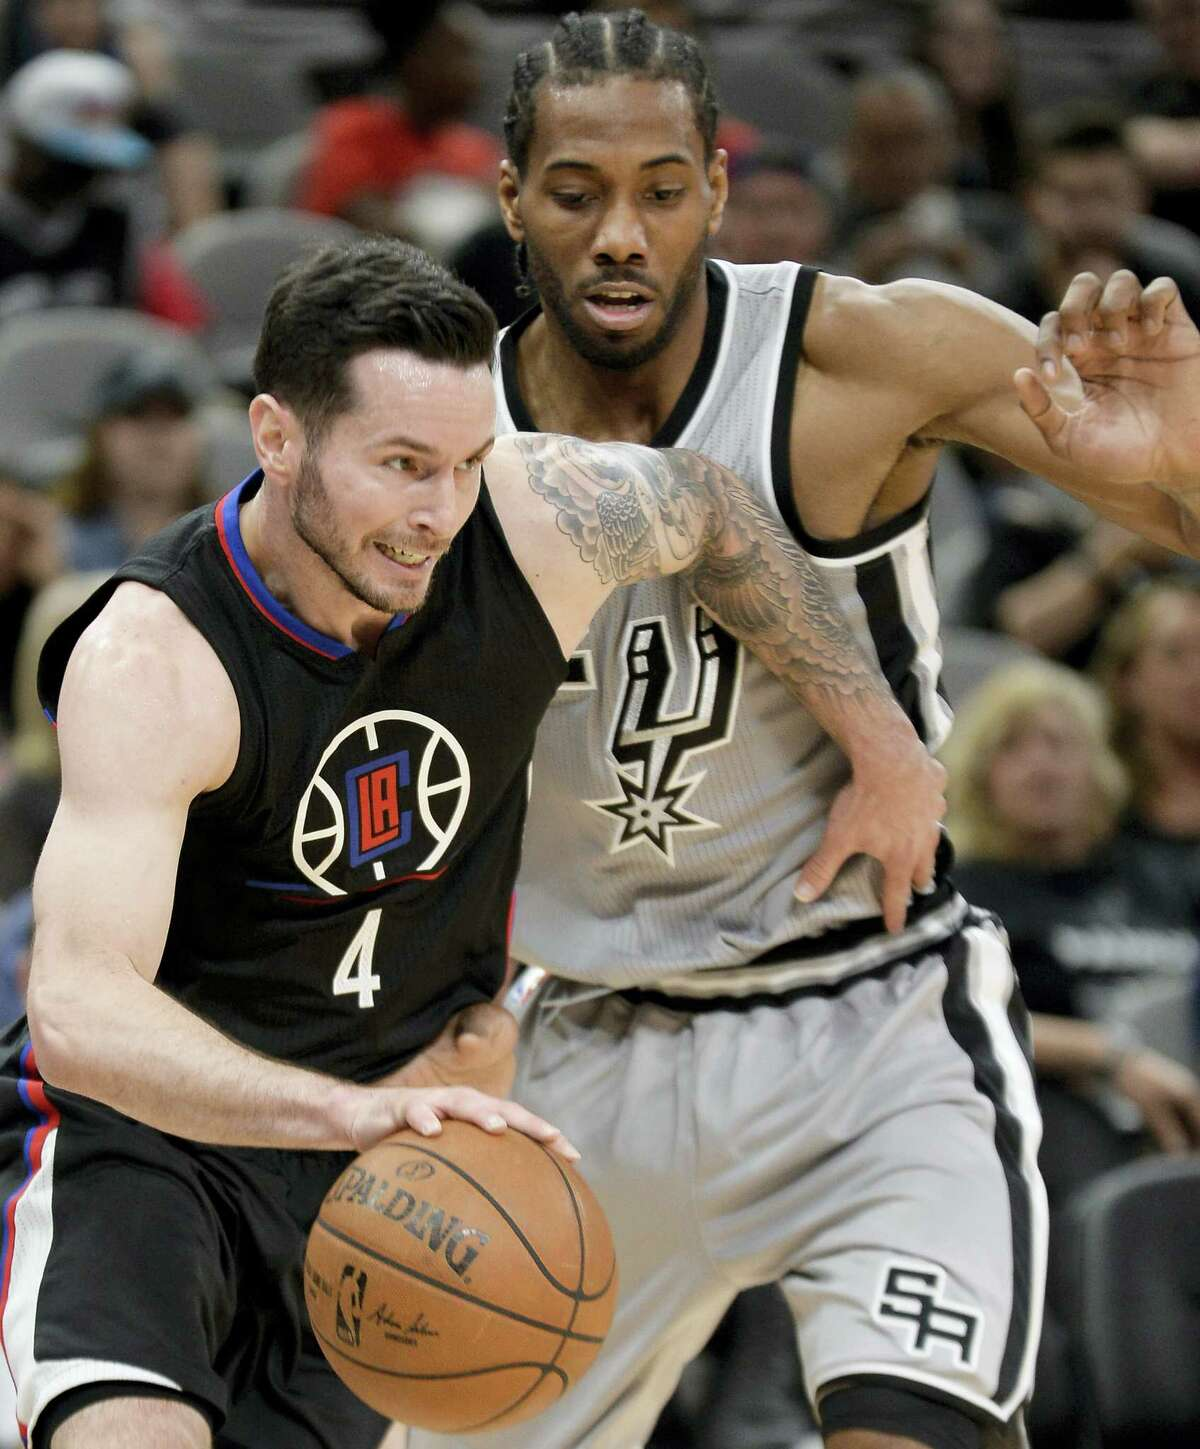 Los Angeles Clippers guard J.J. Redick (4) drives around San Antonio Spurs forward Kawhi Leonard during the first half of an NBA basketball game, Saturday, April 8, 2017, in San Antonio. (AP Photo/Darren Abate)